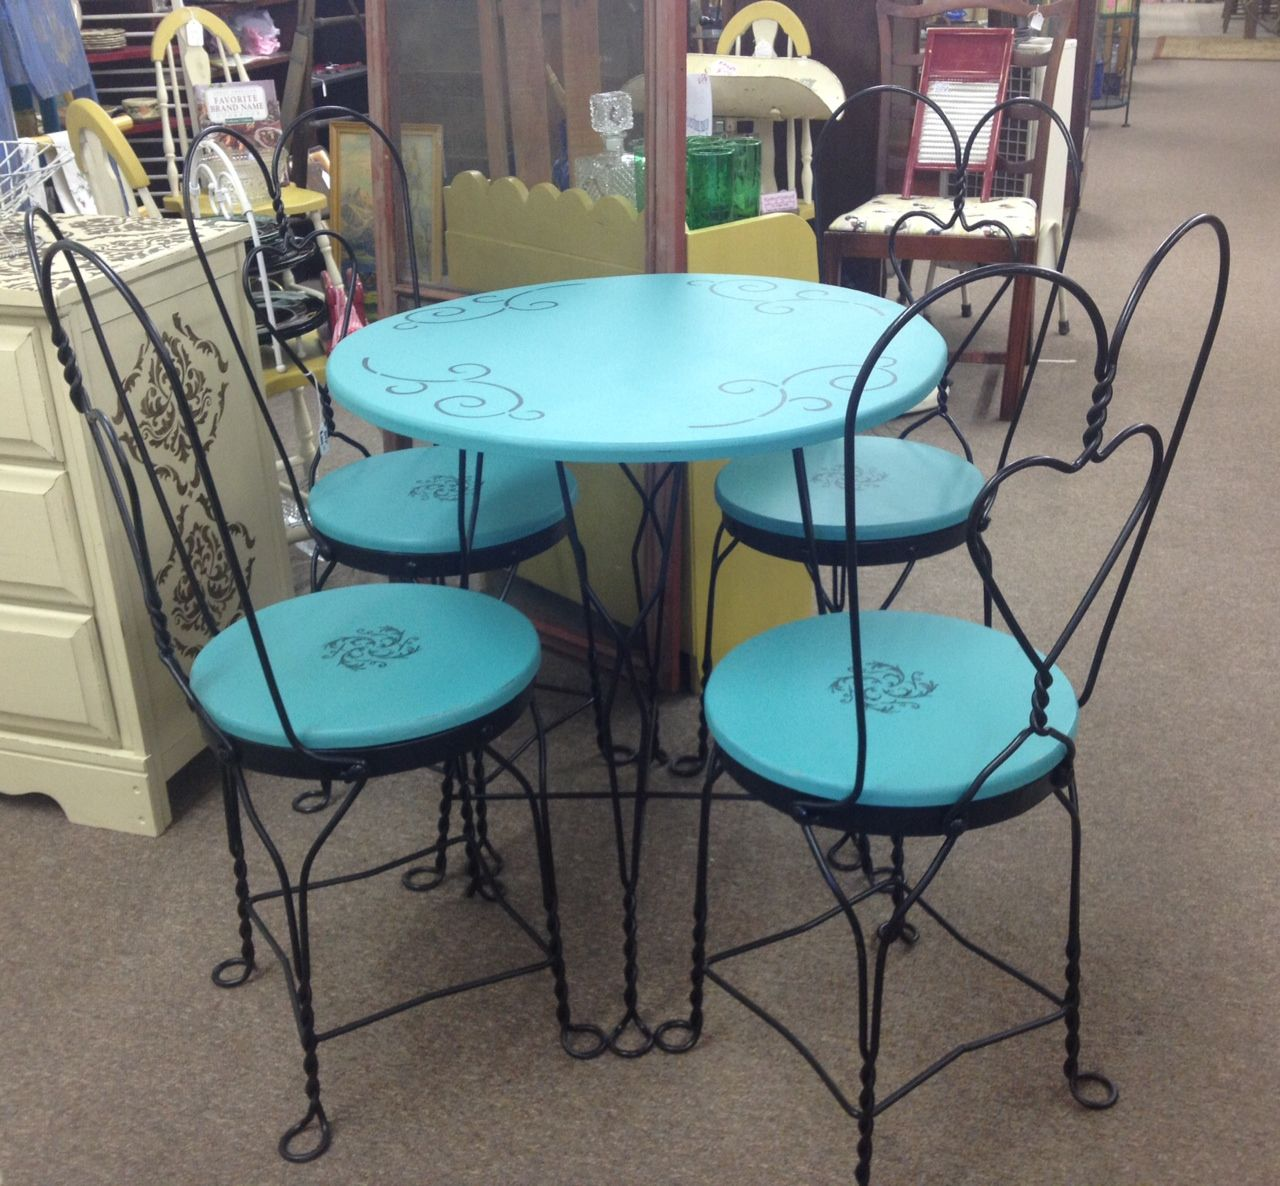 ice cream table and chairs cosco high chair model 03354 painted antique parlour 4 hand in annie sloan chalk paint provence with black stenciling